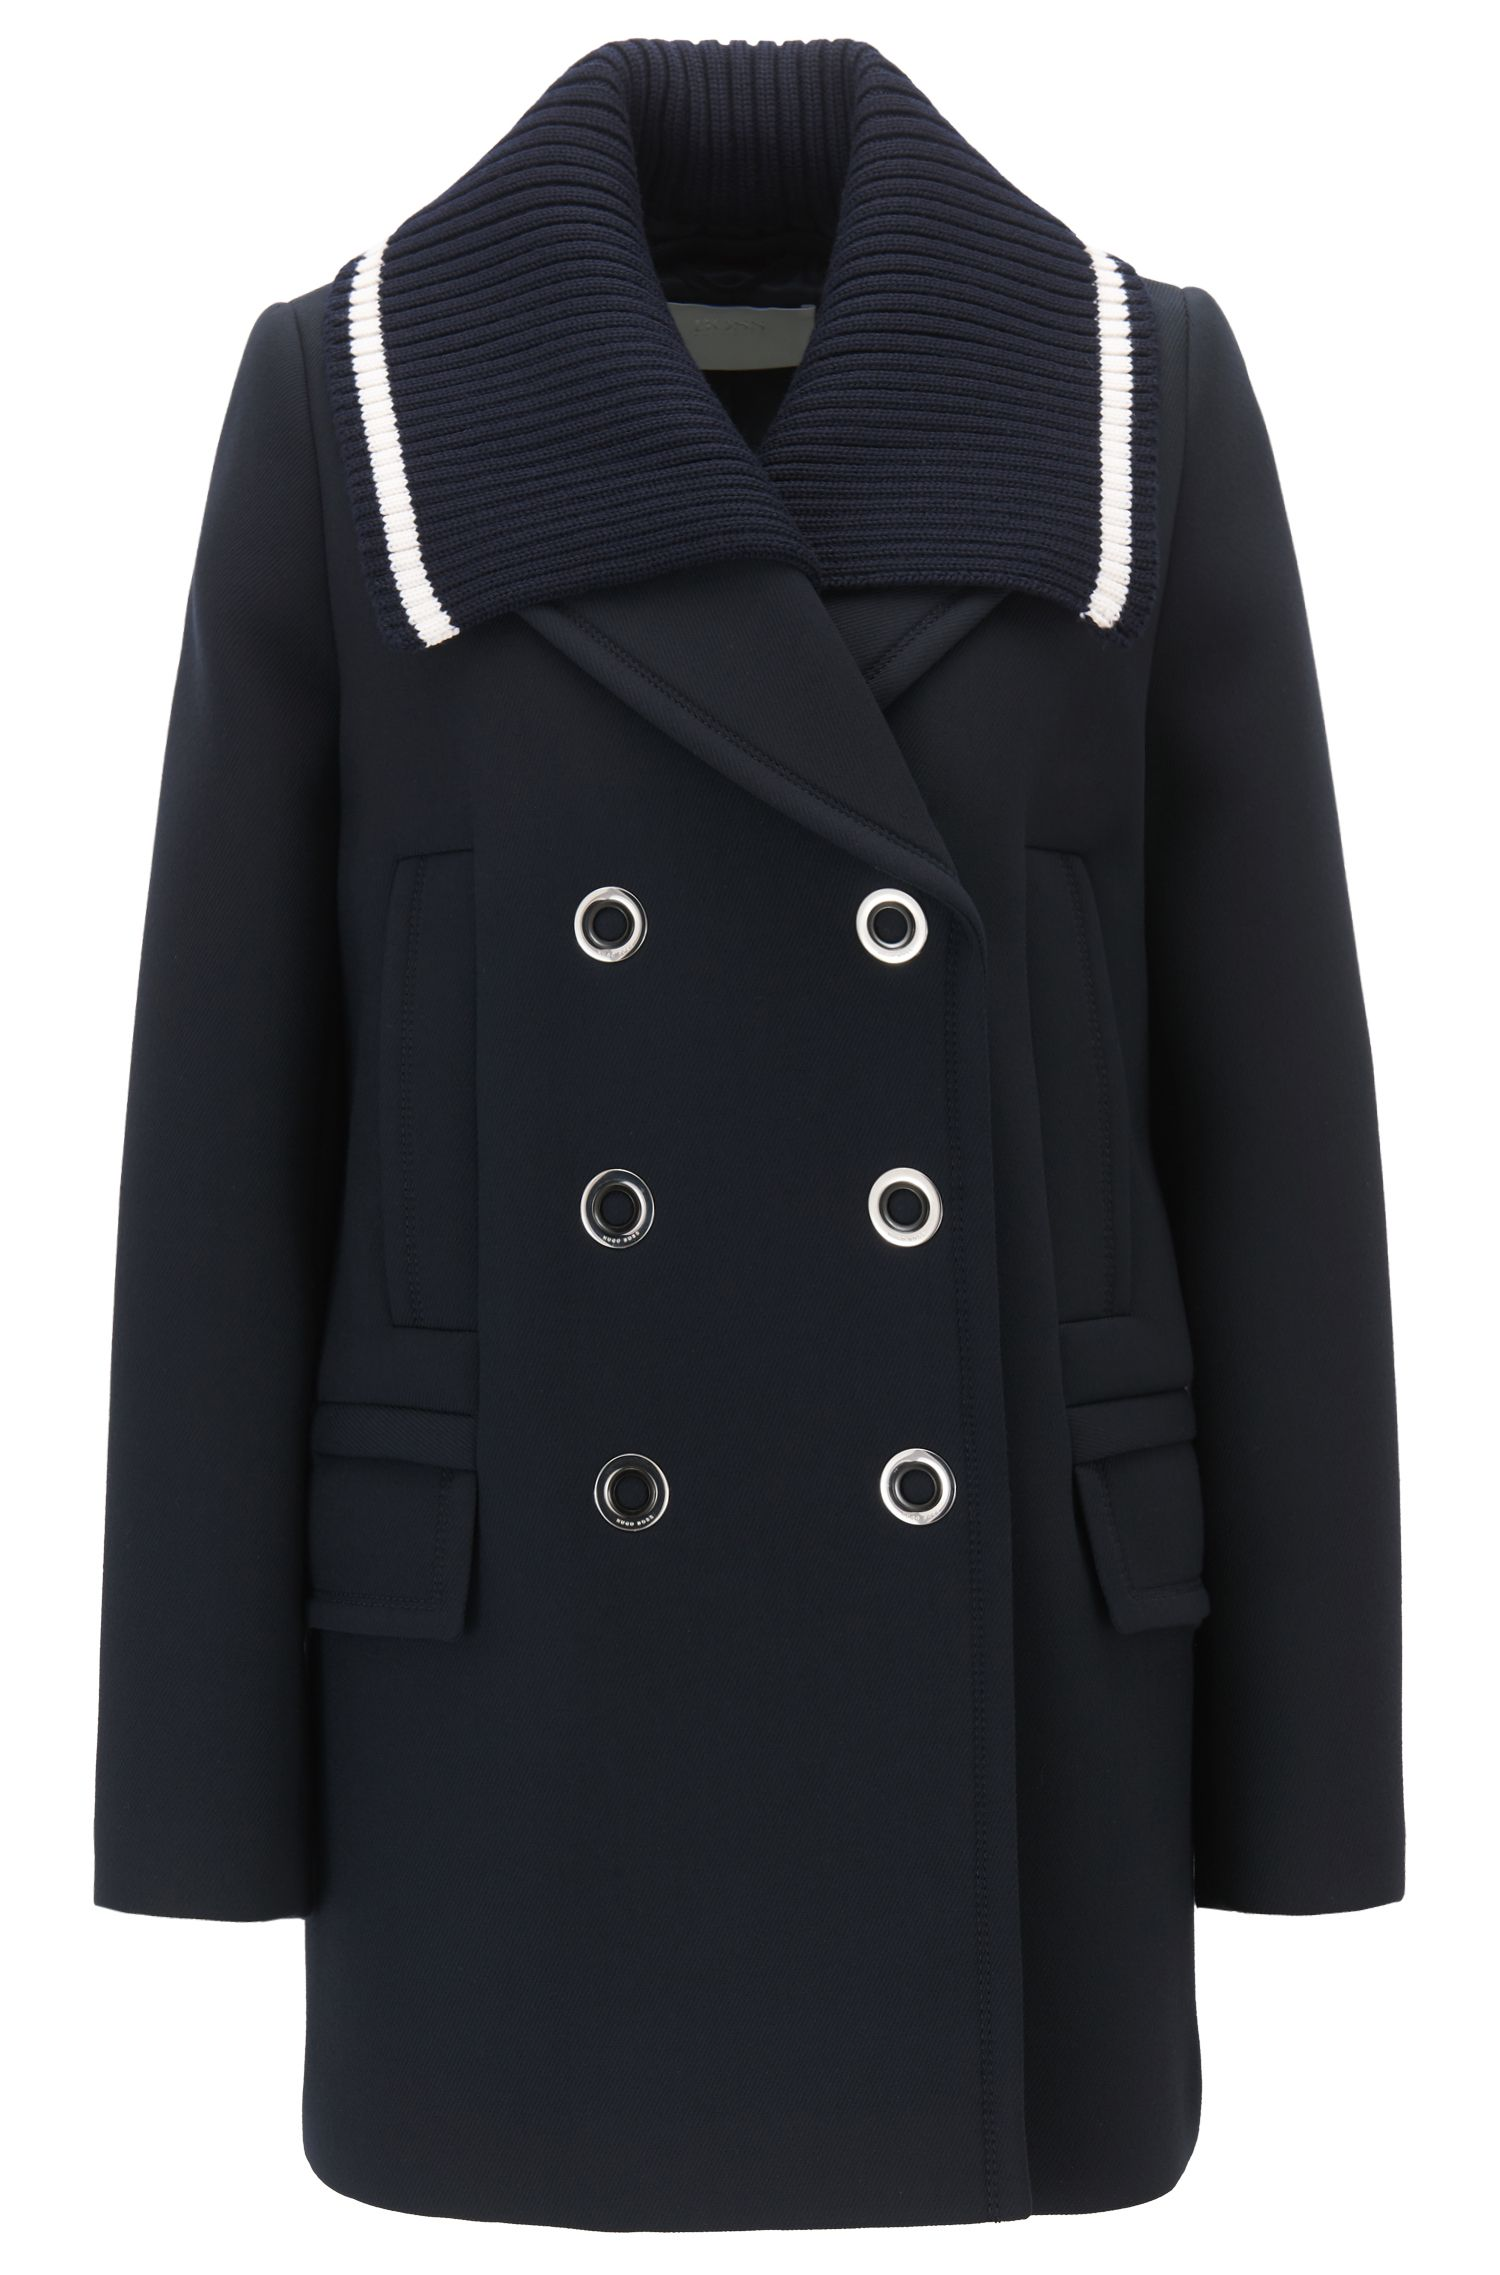 Double-breasted sailor-style jacket in bonded twill